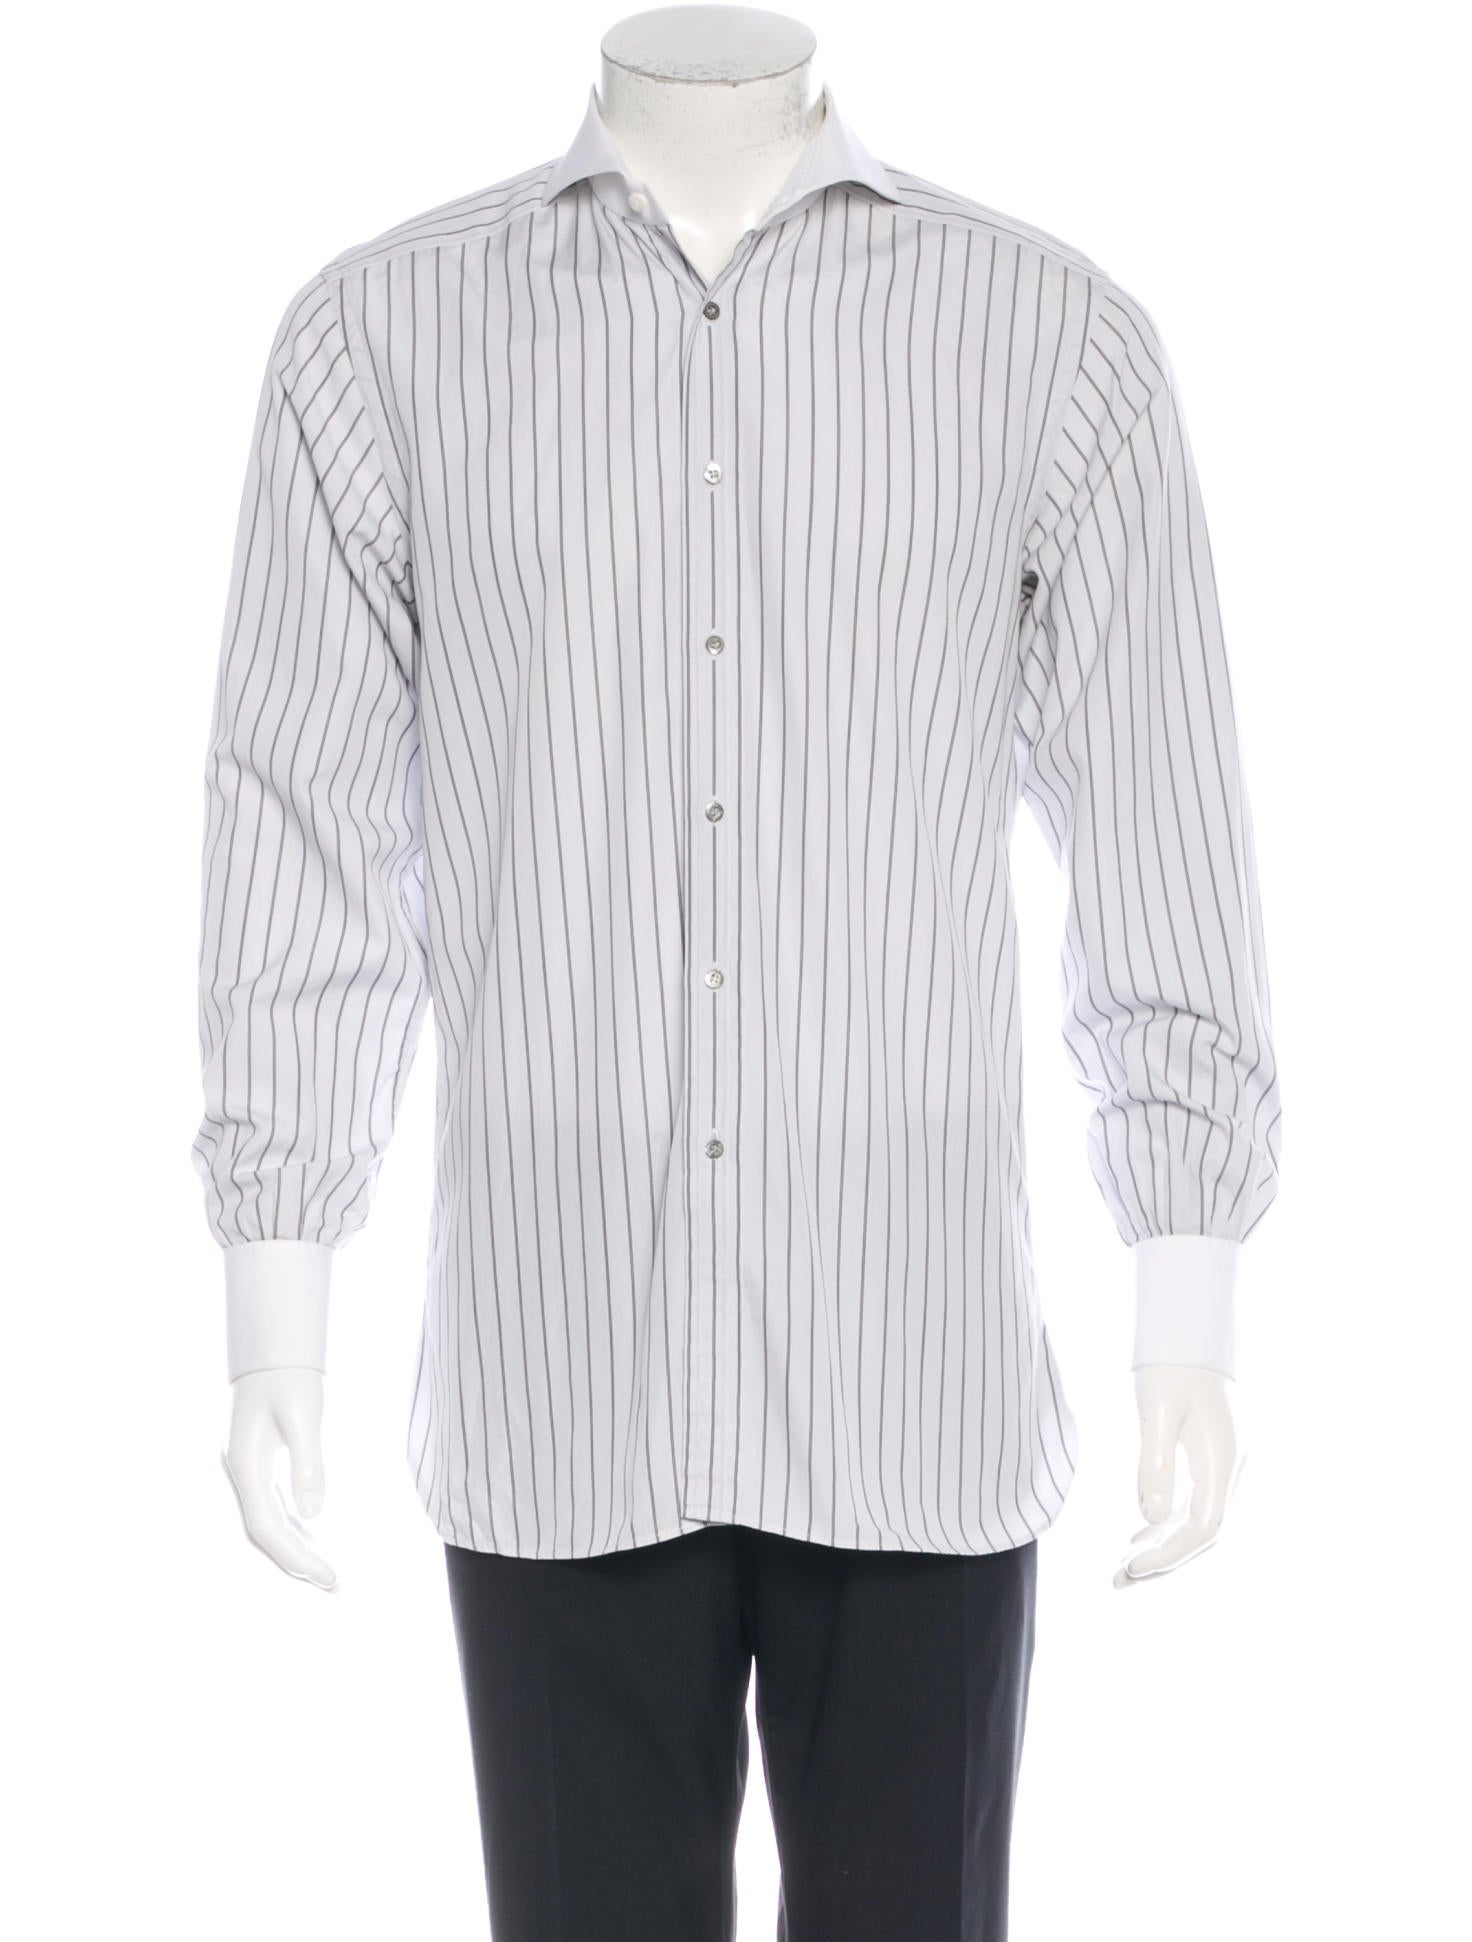 gucci striped french cuff button up shirt clothing. Black Bedroom Furniture Sets. Home Design Ideas